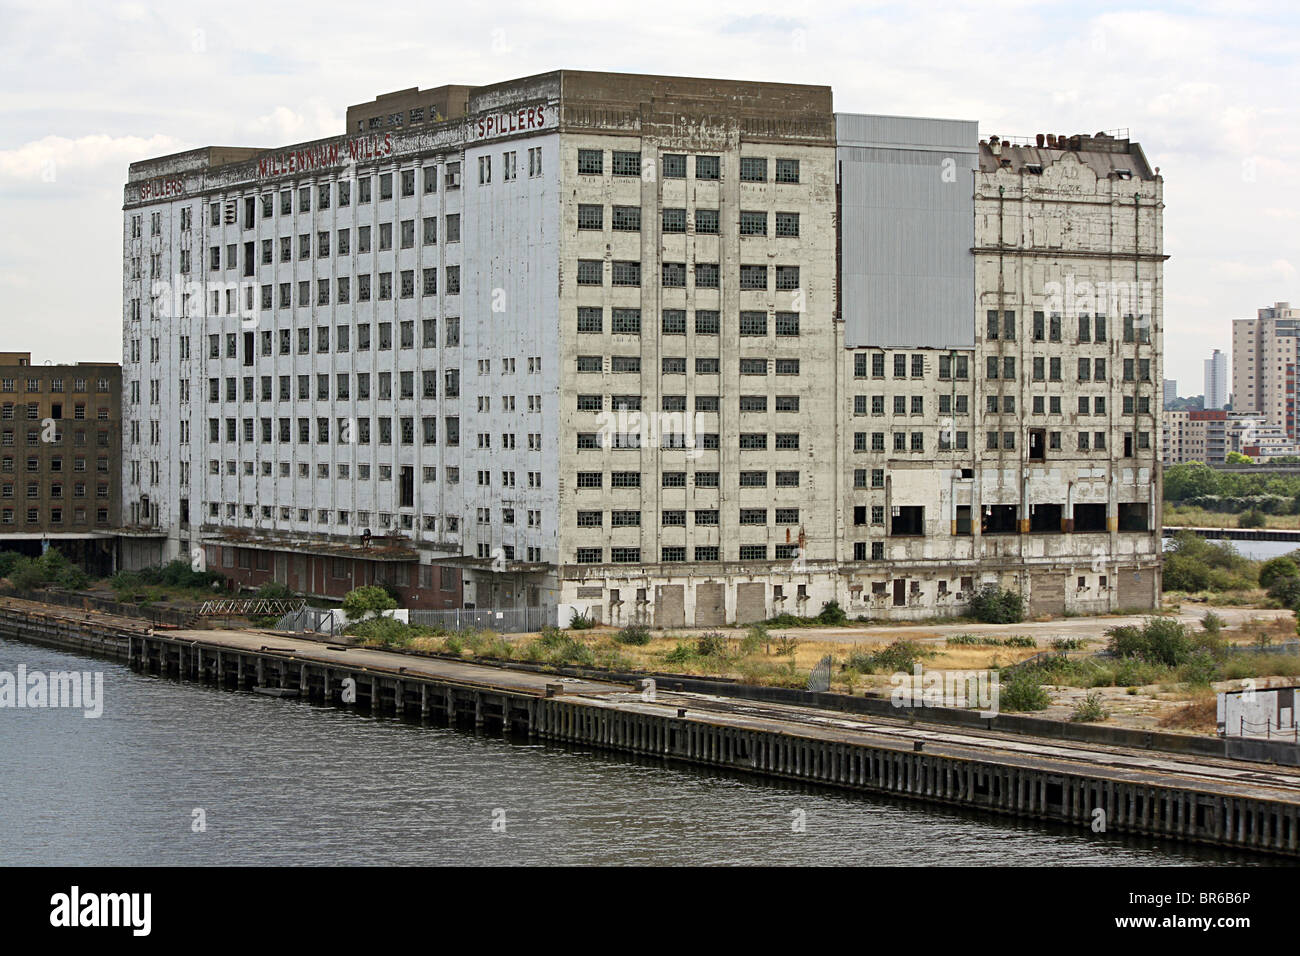 Spiller's Millennium Mills, Silvertown, Docklands, London. - Stock Image